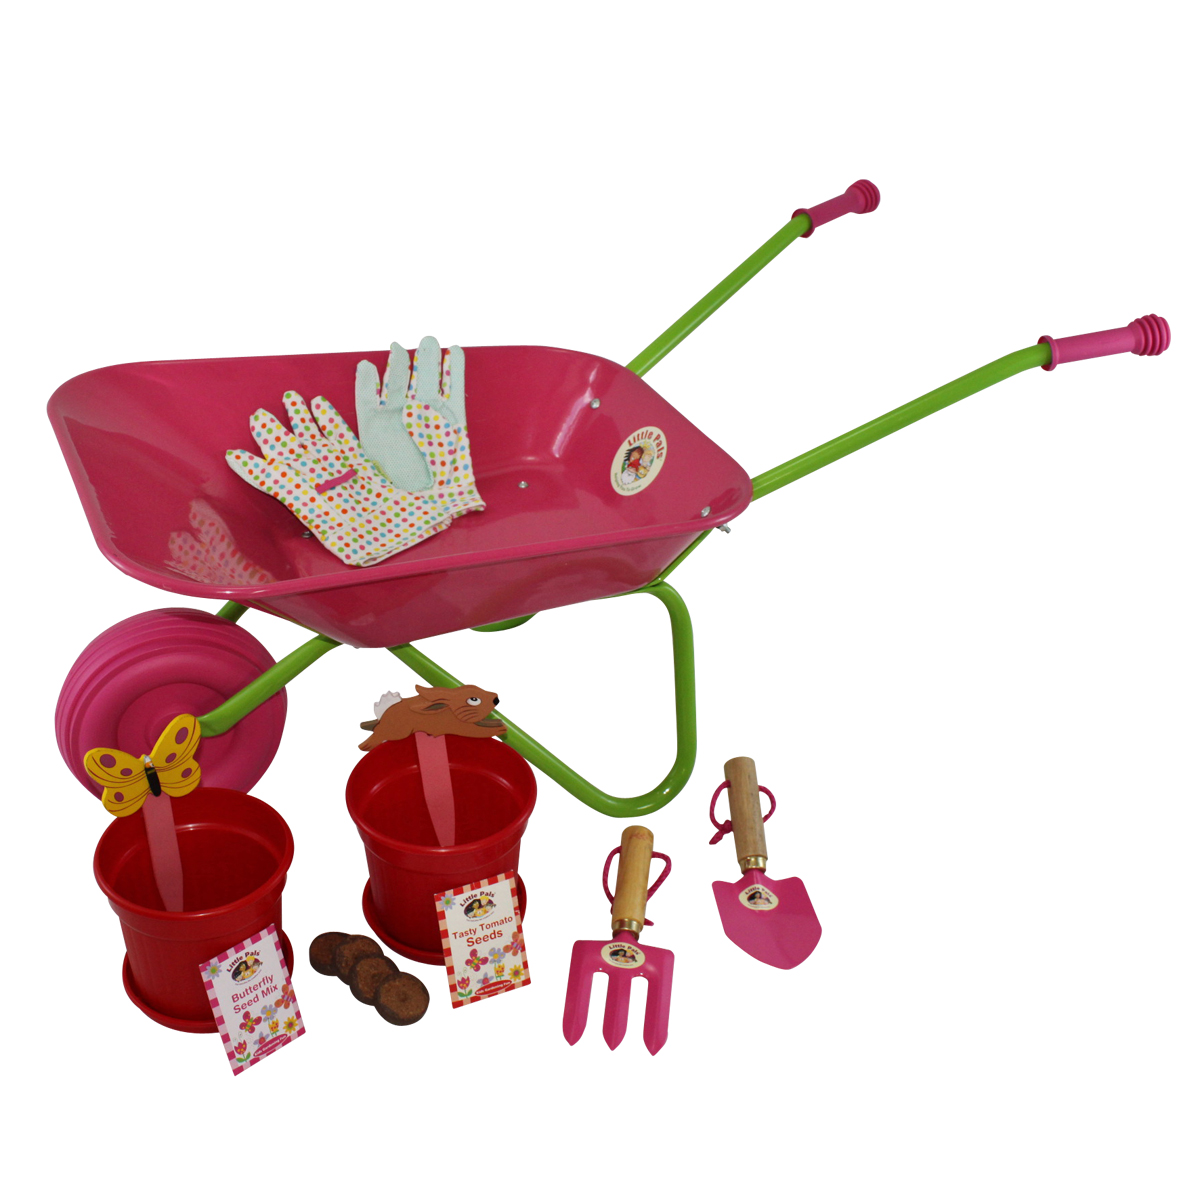 Childrens Wheelbarrow and Growing Set, Pink